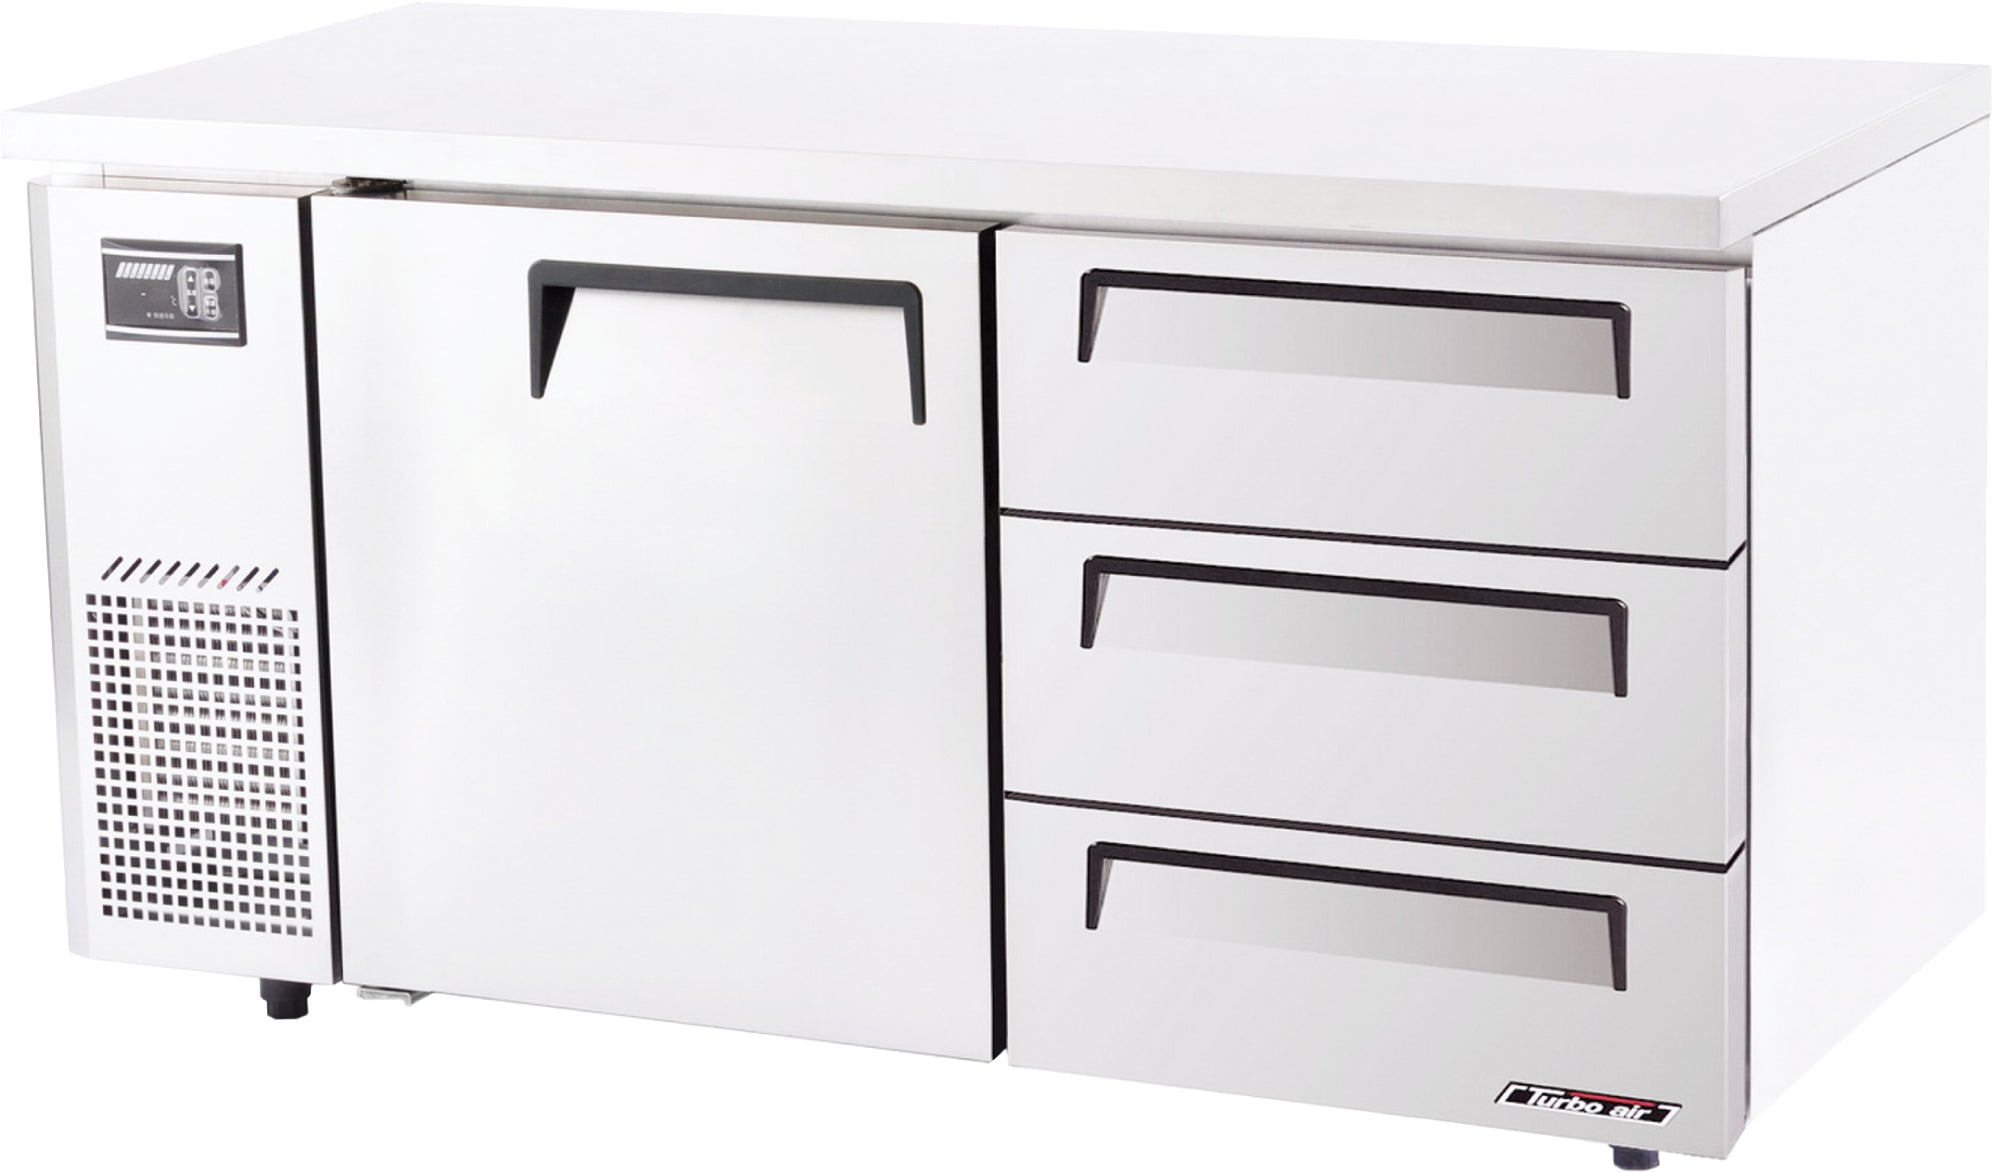 Turboair KUR15-3D-3 1 Door, 3 Drawer Refrigerator - Catering Sale